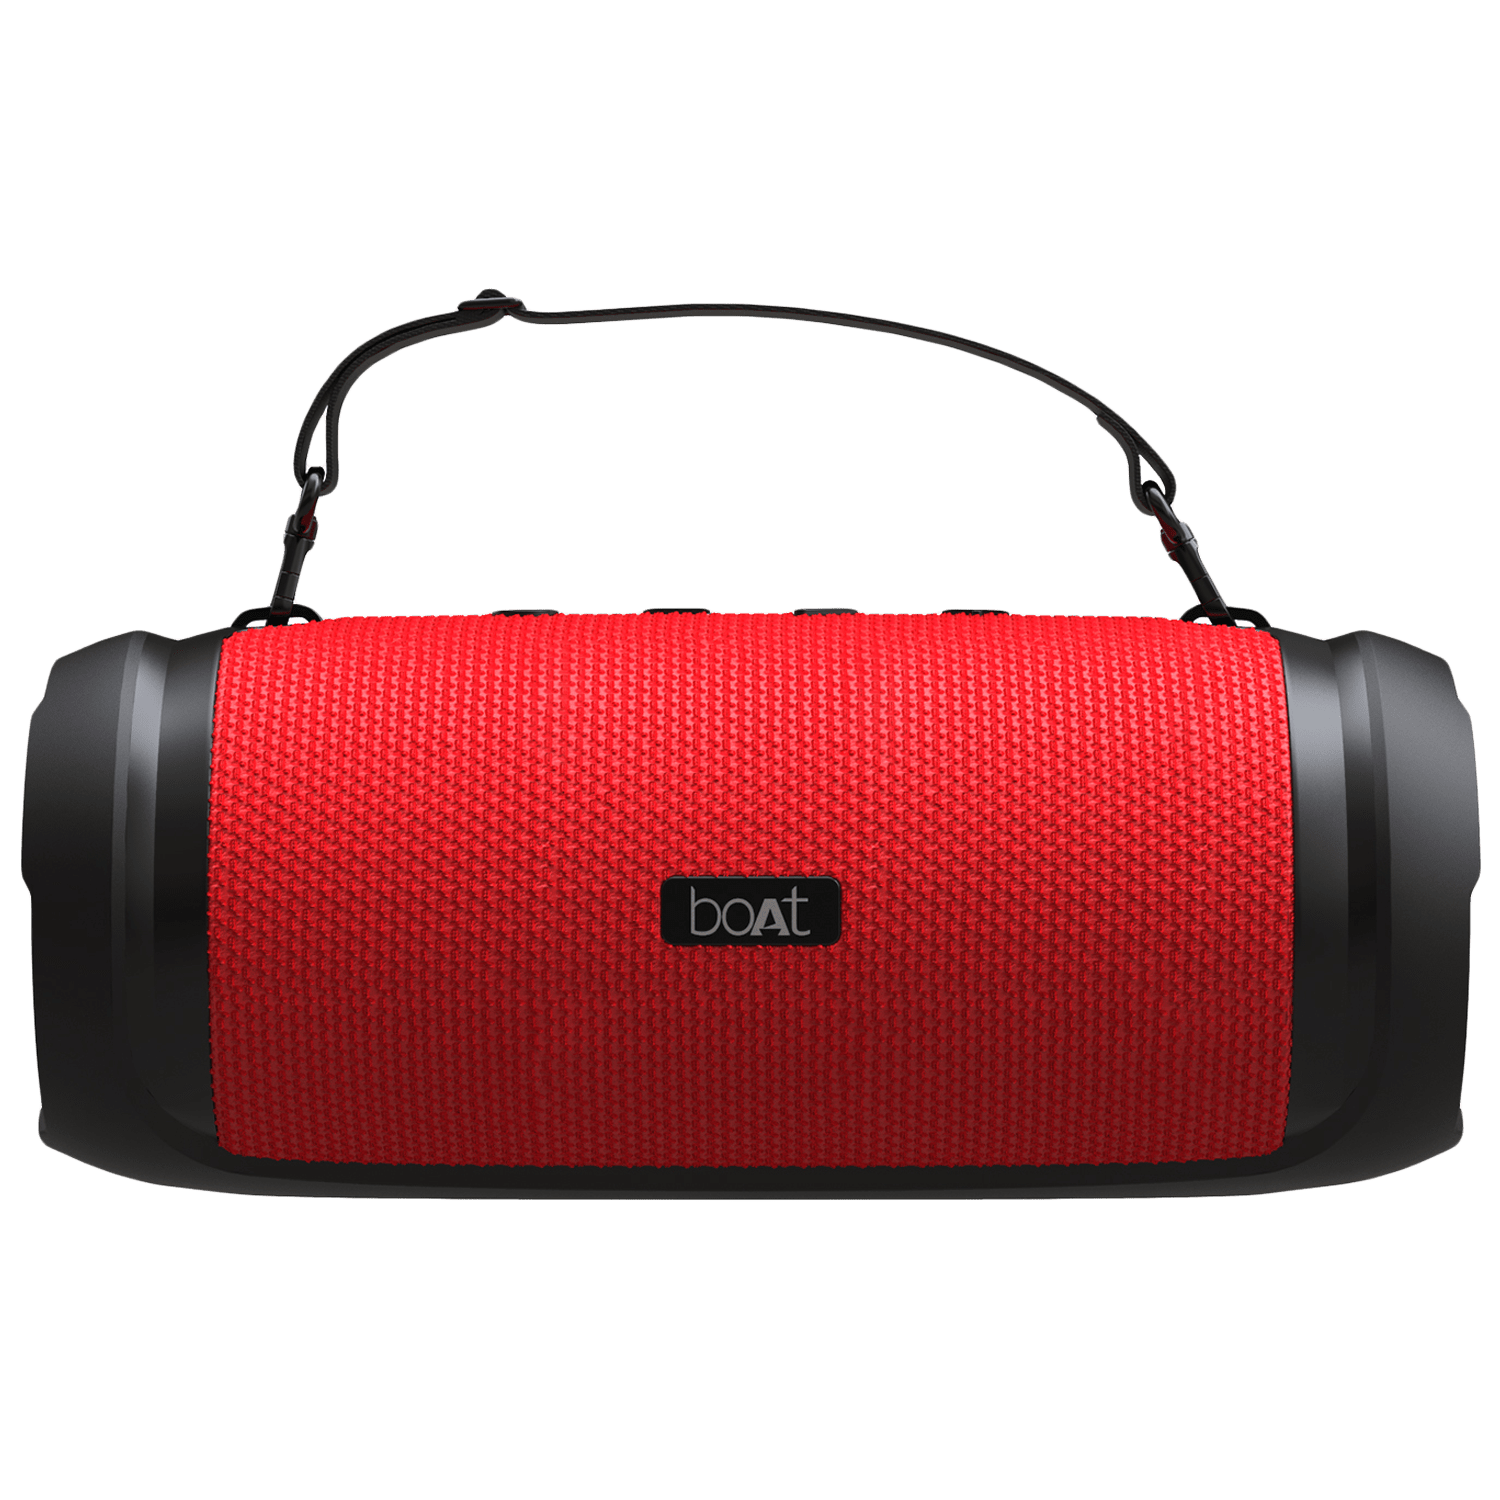 boAt Stone 1508 40 Watts Portable Bluetooth Speaker (Water Resistant, Red)